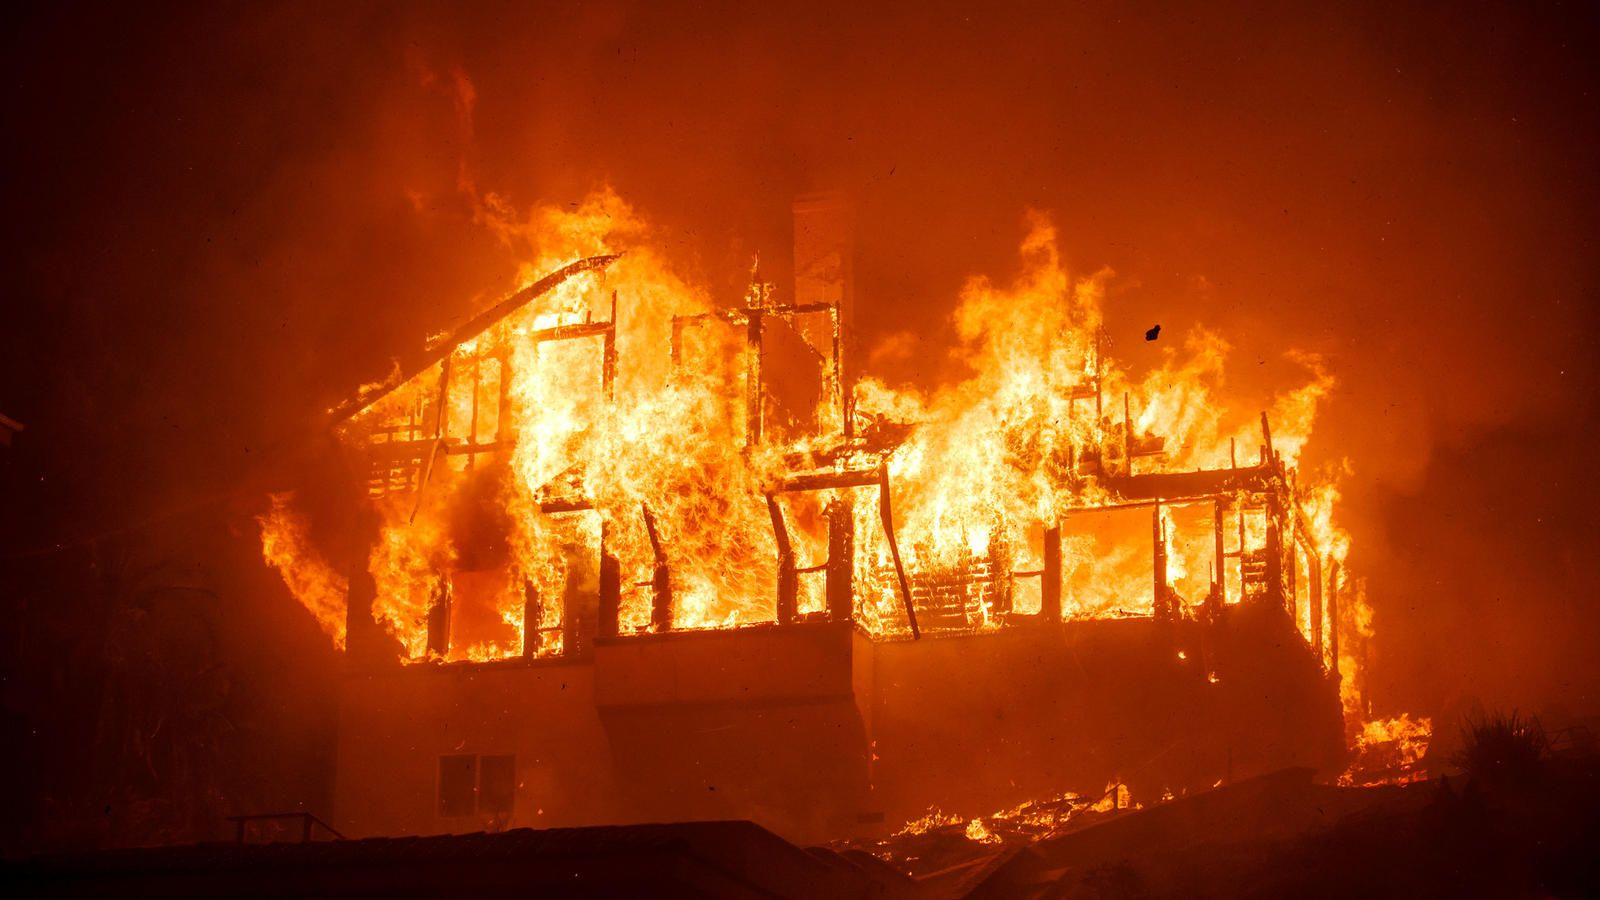 Southern California Fires Live Updates New Evacuation Orders Issued For Carpinteria And Montecito As Thomas Fire Again Rages Out Of Control Ventura County California Wildfires Fire